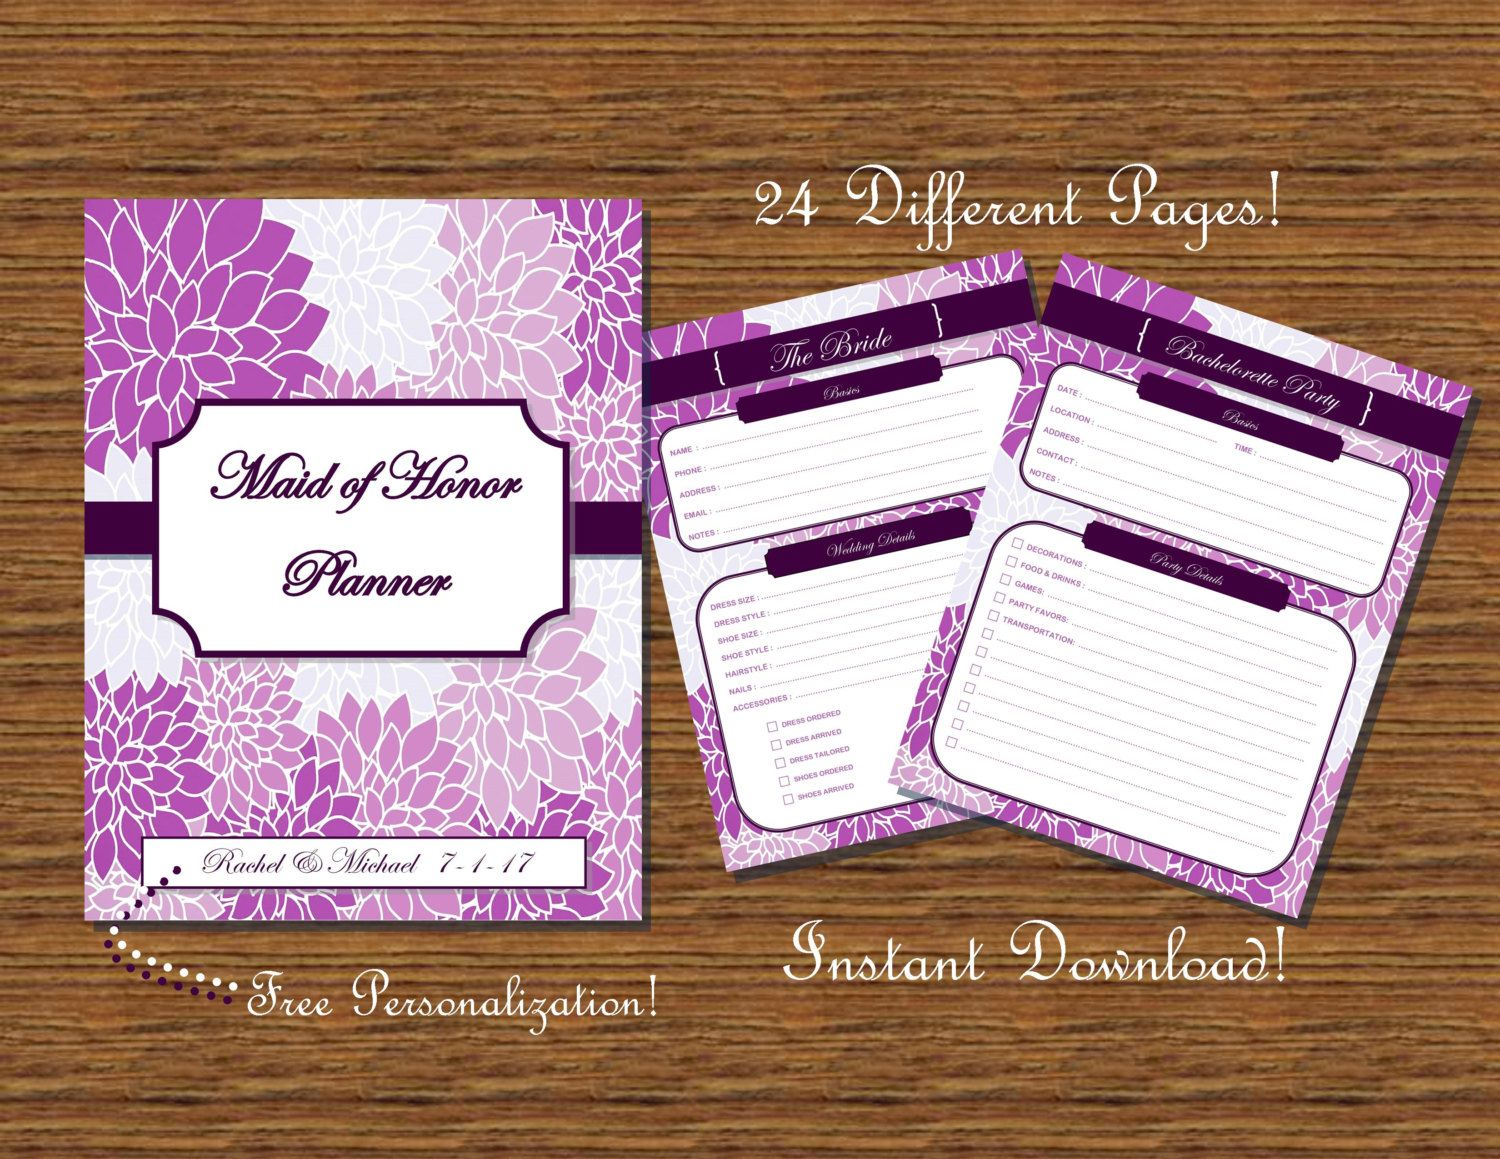 image about Maid of Honor Printable Planner named Maid of Honor Planner / Organizer - Floral Printable by way of